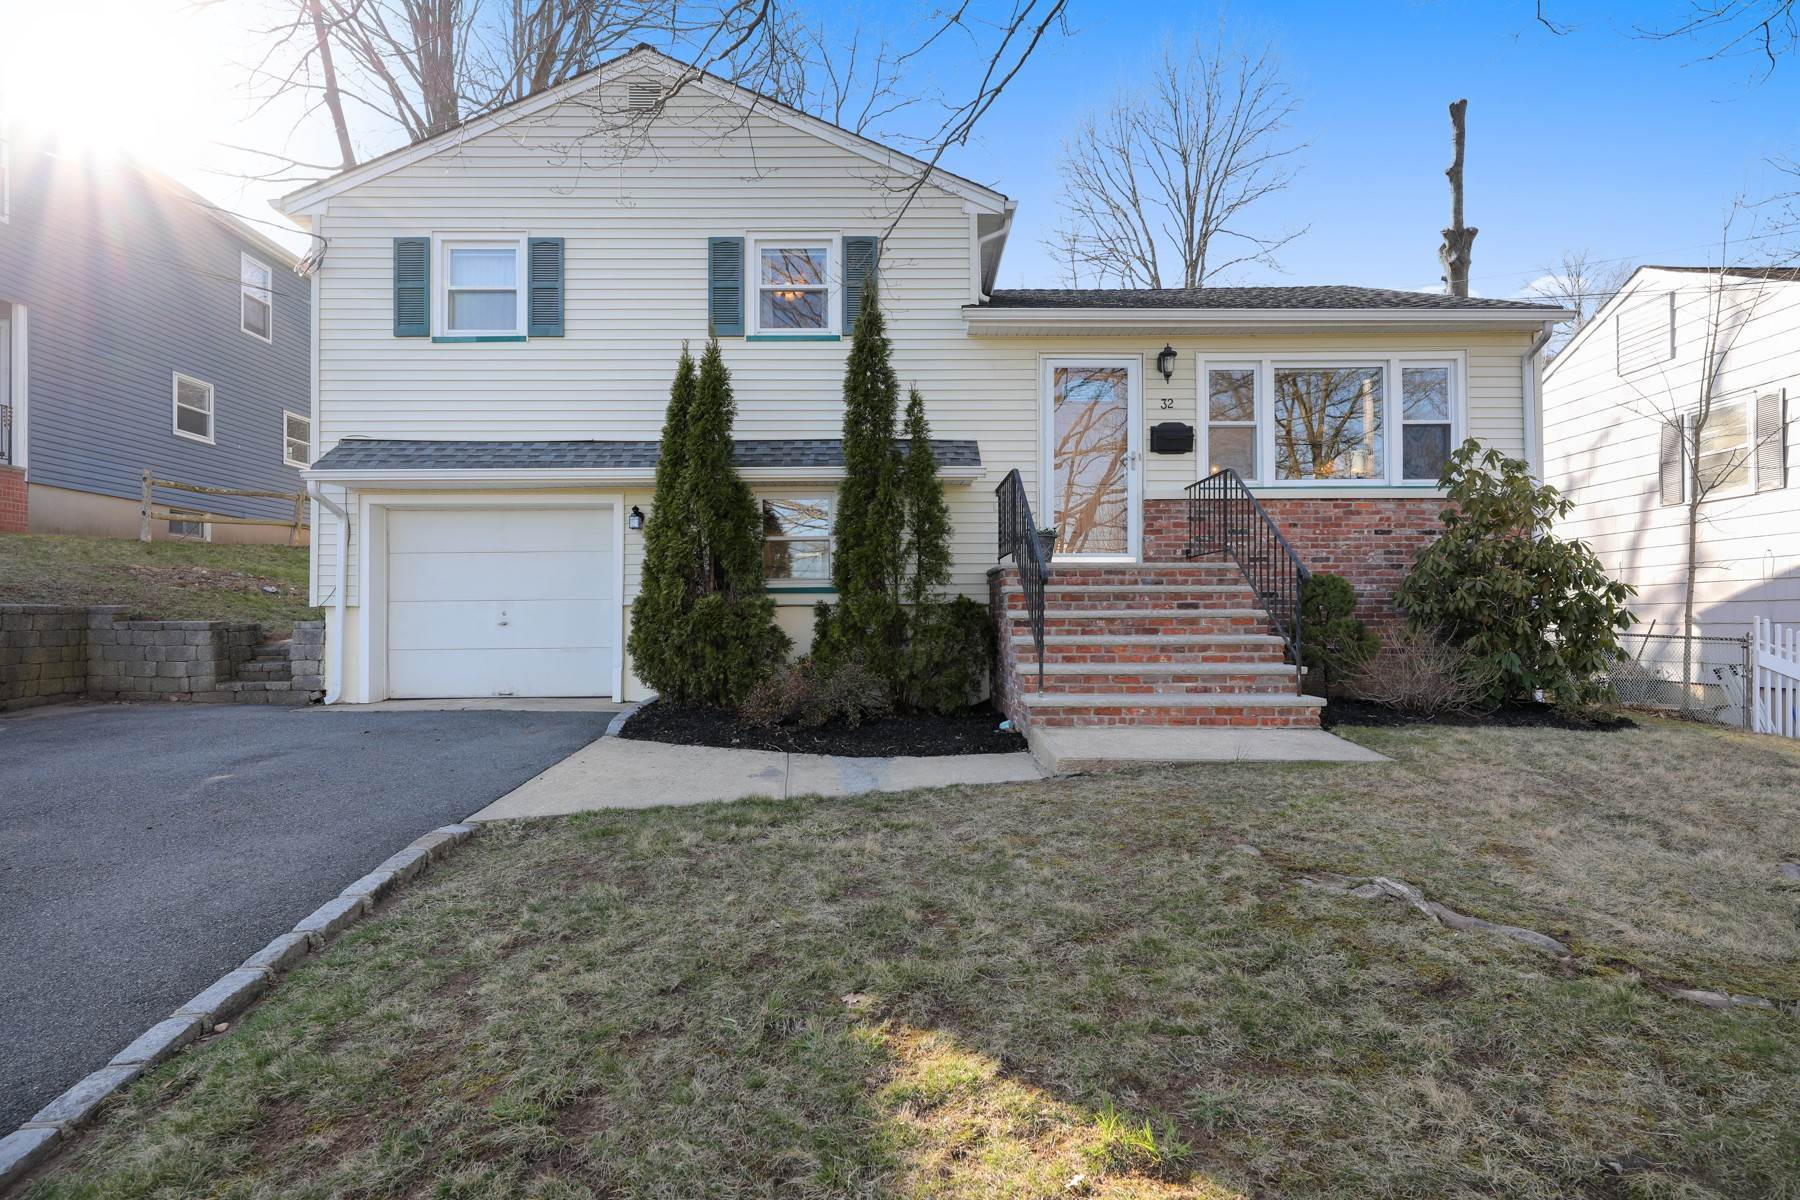 Single Family Homes for Sale at Sun-Filled And Spacious Summit Split Level 32 Clark Street Summit, New Jersey 07901 United States